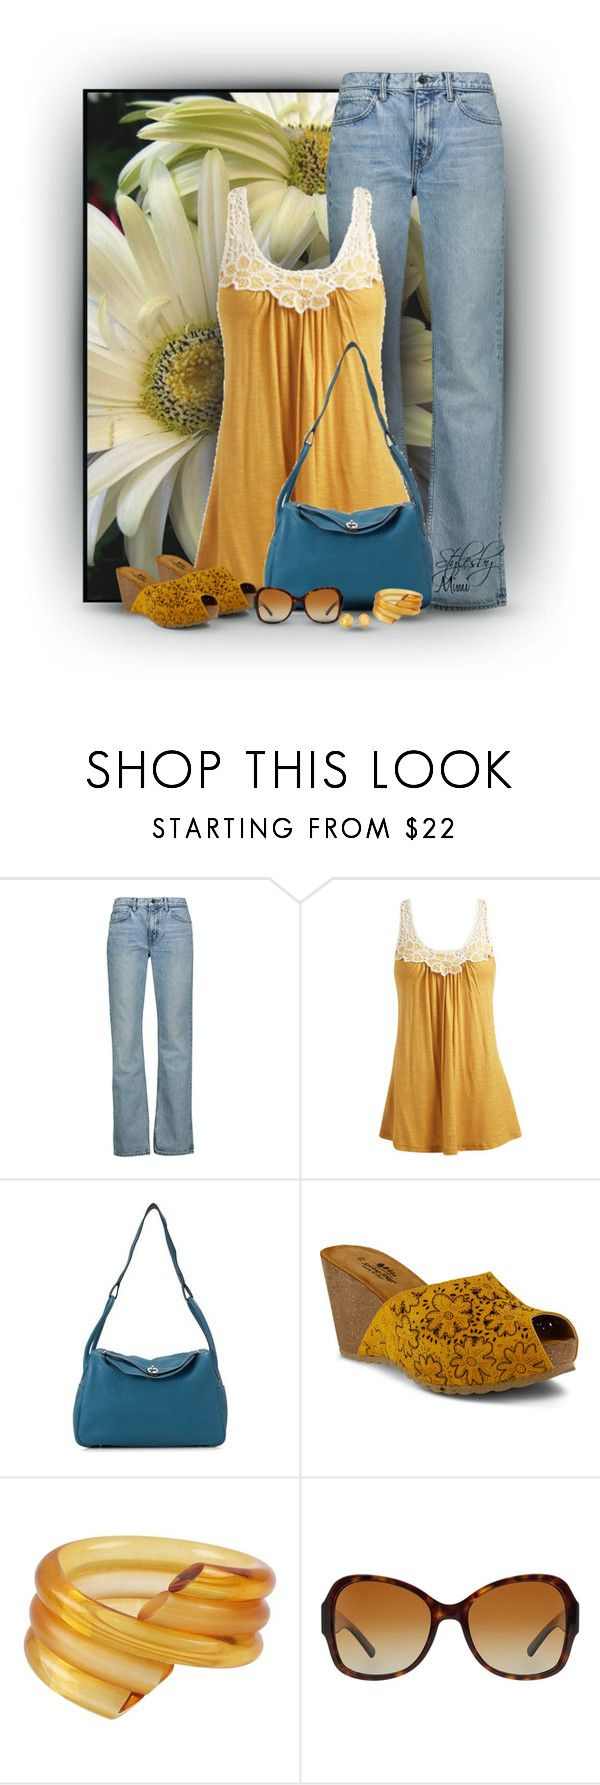 """""""Daisies for Mom (4.29.17)"""" by stylesbymimi ❤ liked on Polyvore featuring Trilogy, Helmut Lang, Wet Seal, Hermès, Spring Step, Judith Hendler, Tory Burch and Vera Bradley"""